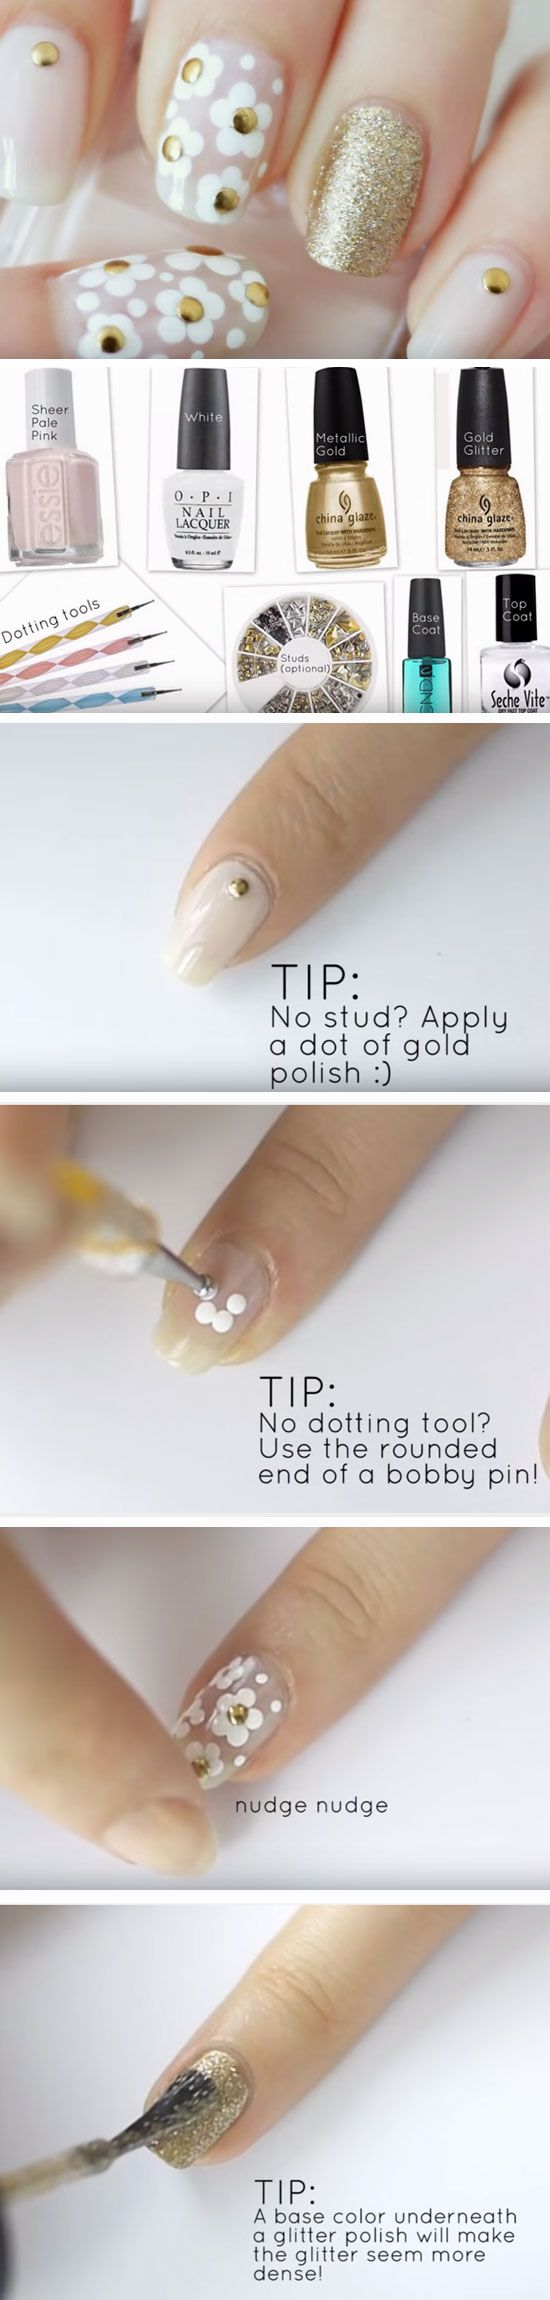 24 Easy Spring Nail Designs for Short Nails | Marc jacobs daisy ...